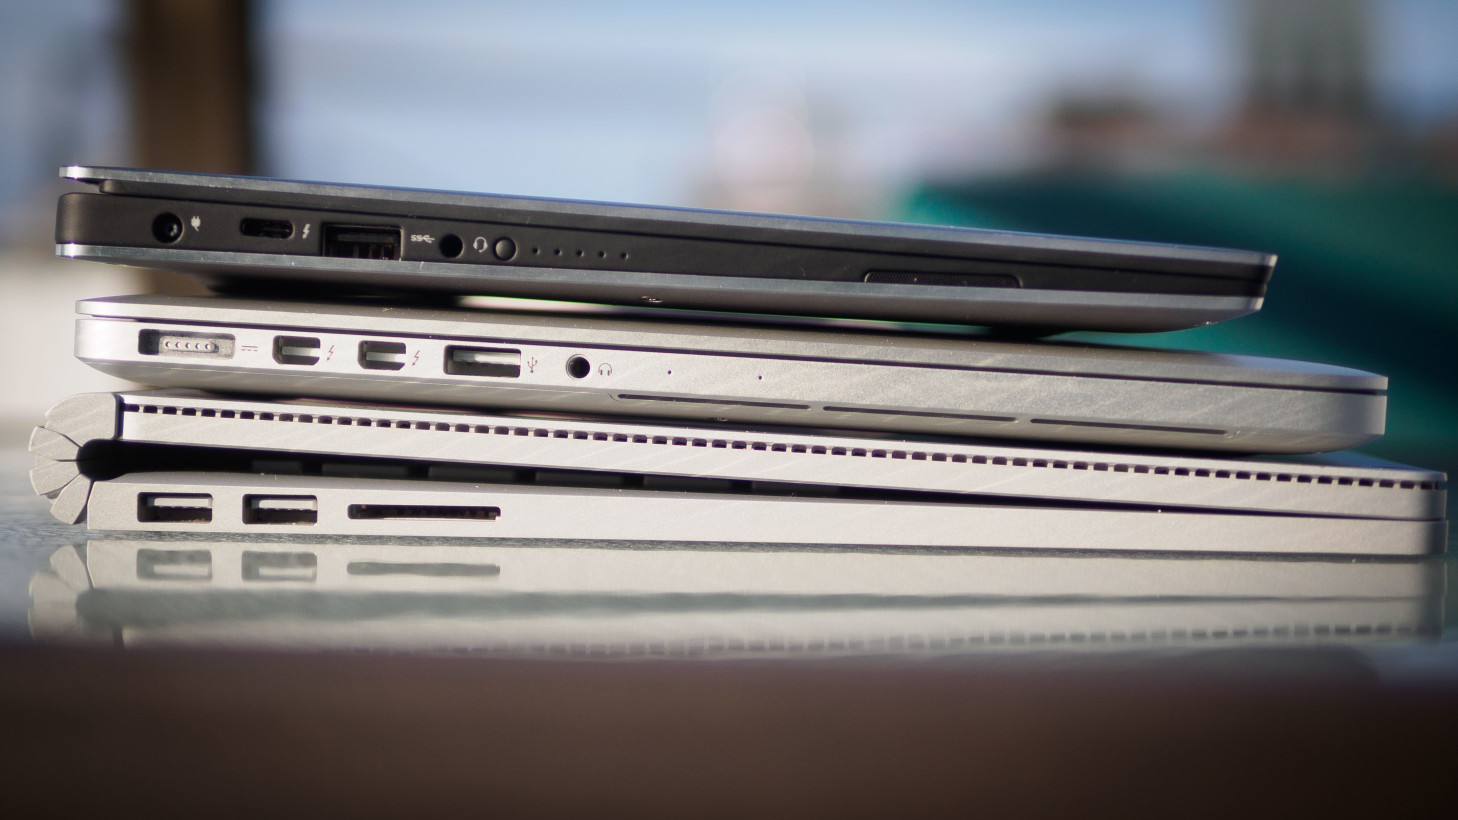 Dell managed the size reduction without a significant increase in thickness.